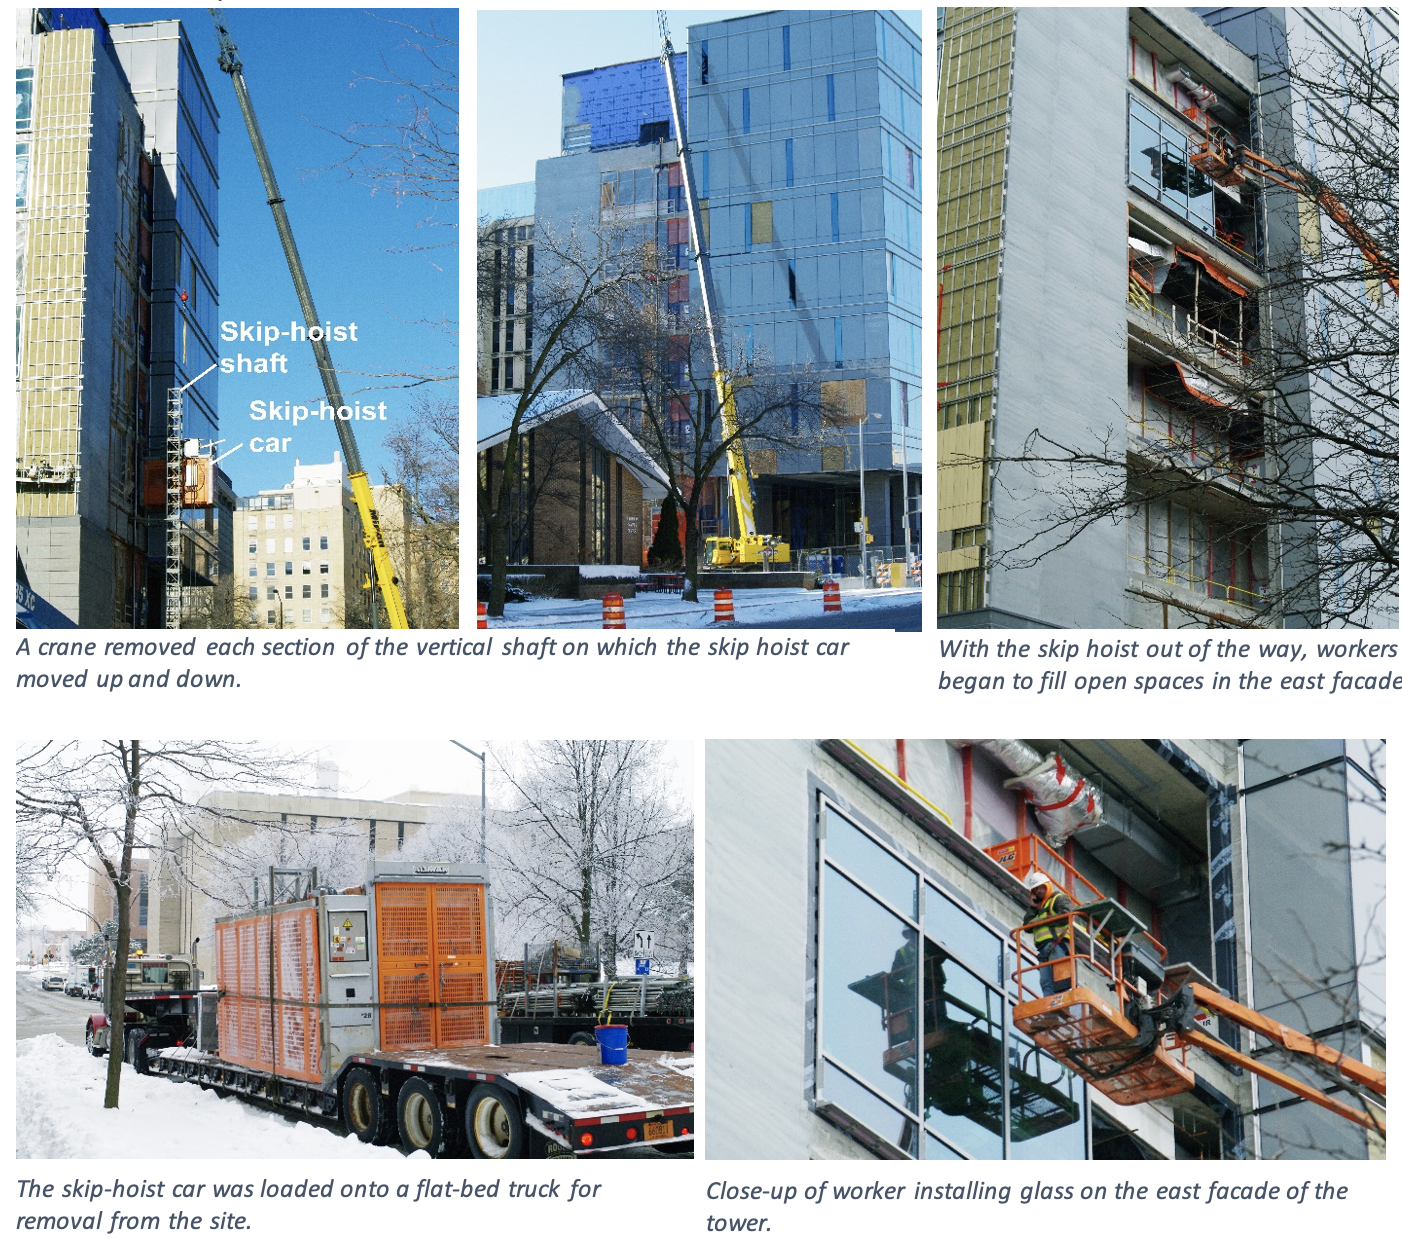 Five images showing a crane removing each section of the vertical shaft on which the skip hoist car moved up and down, the flat-bed truck for removal and a close-up of a worker installing glass on the east facade of the tower.